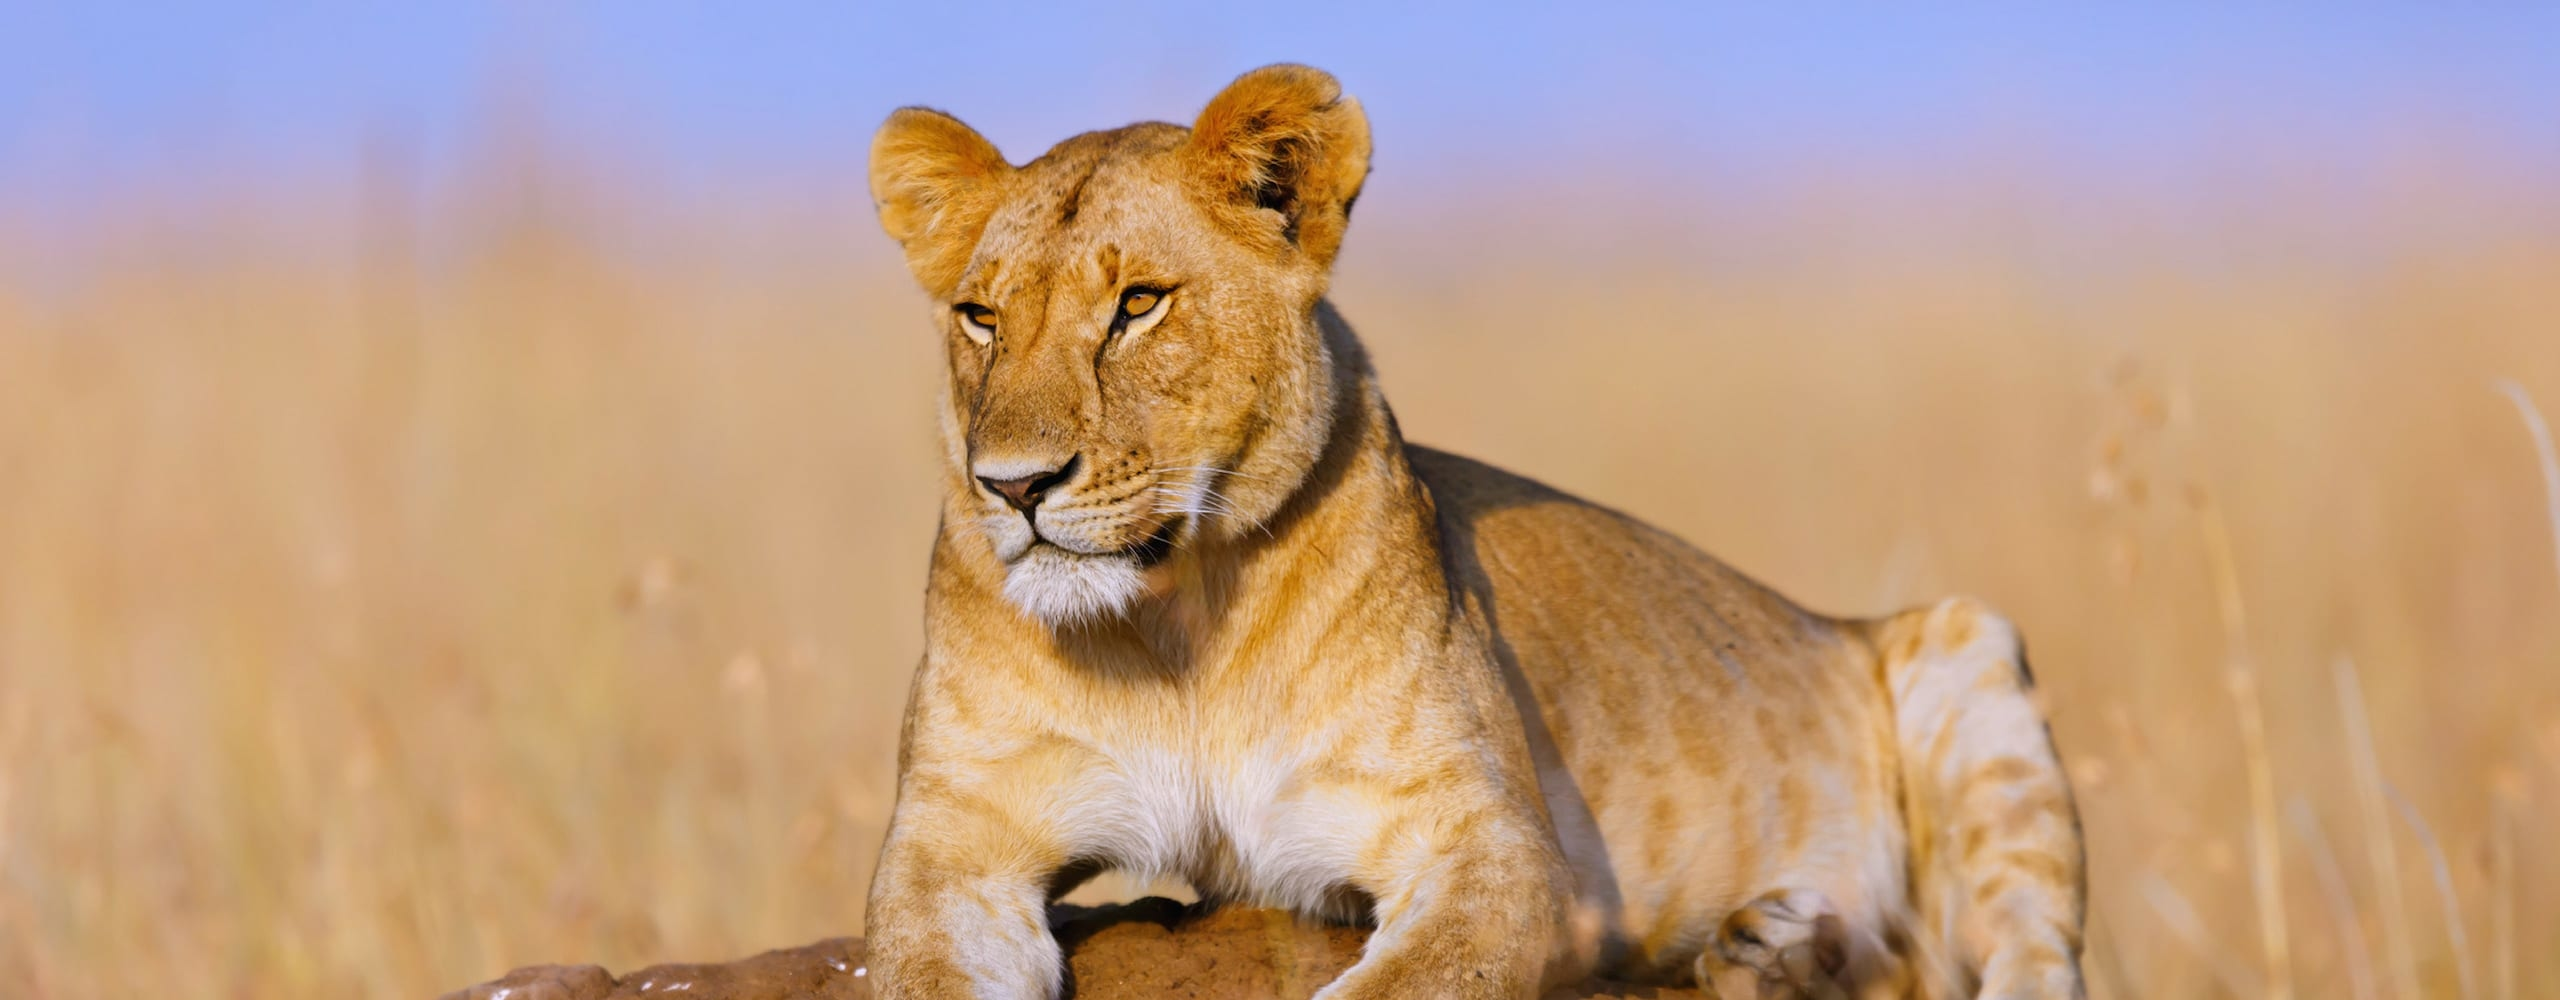 Lions certainly rule the Masai Mara. © Shutterstock